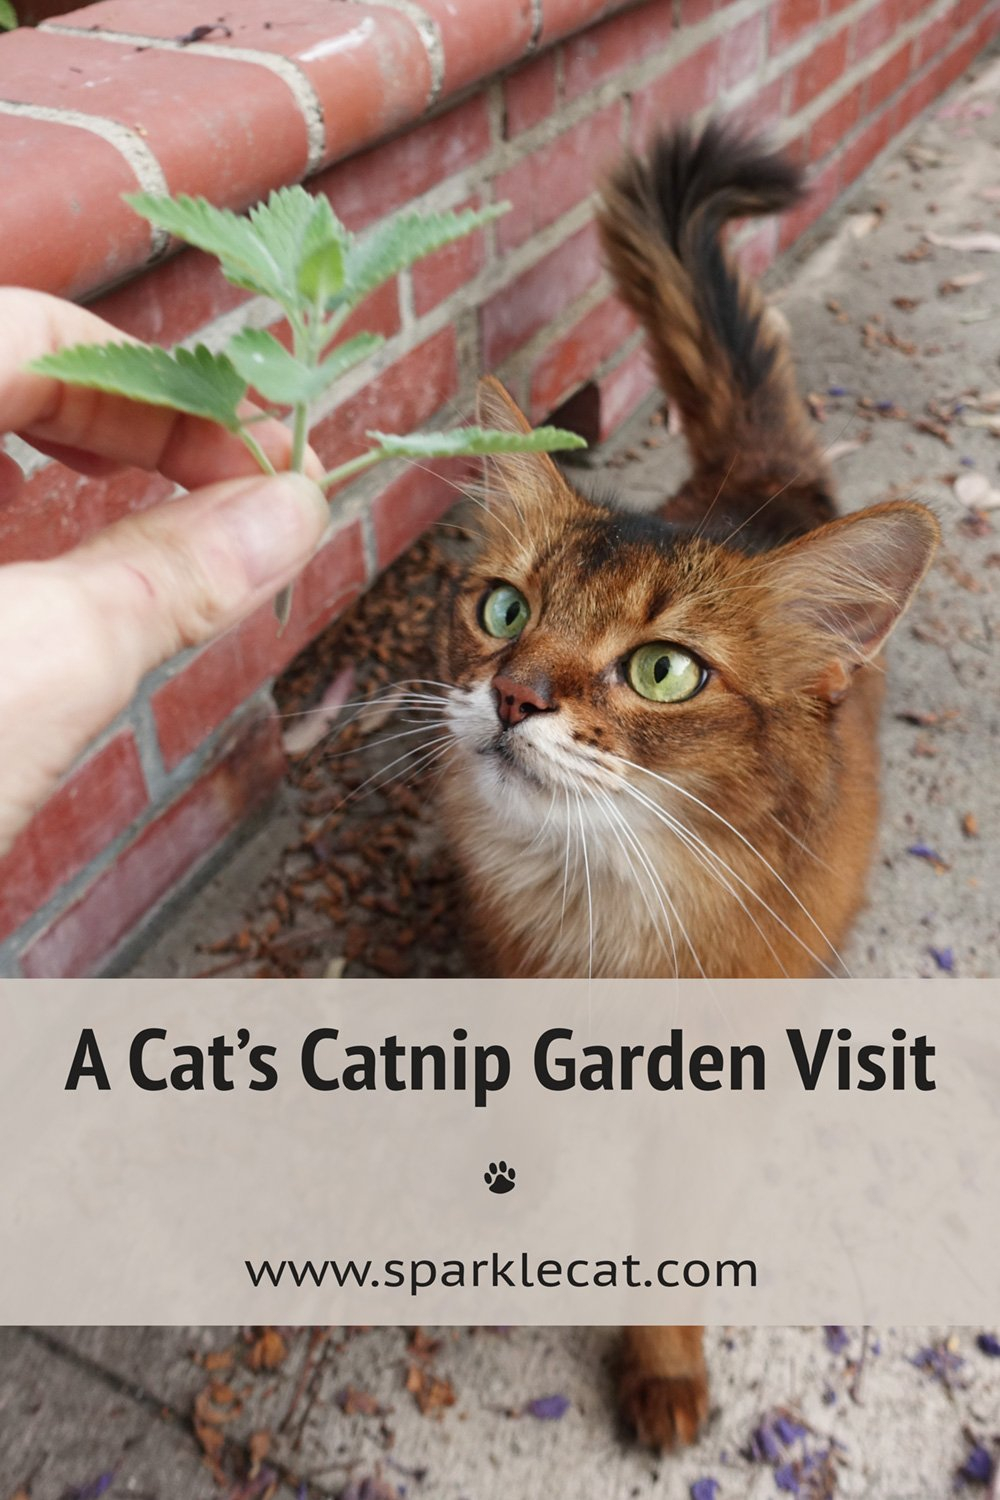 Checking Out My Catnip Garden, With Video!